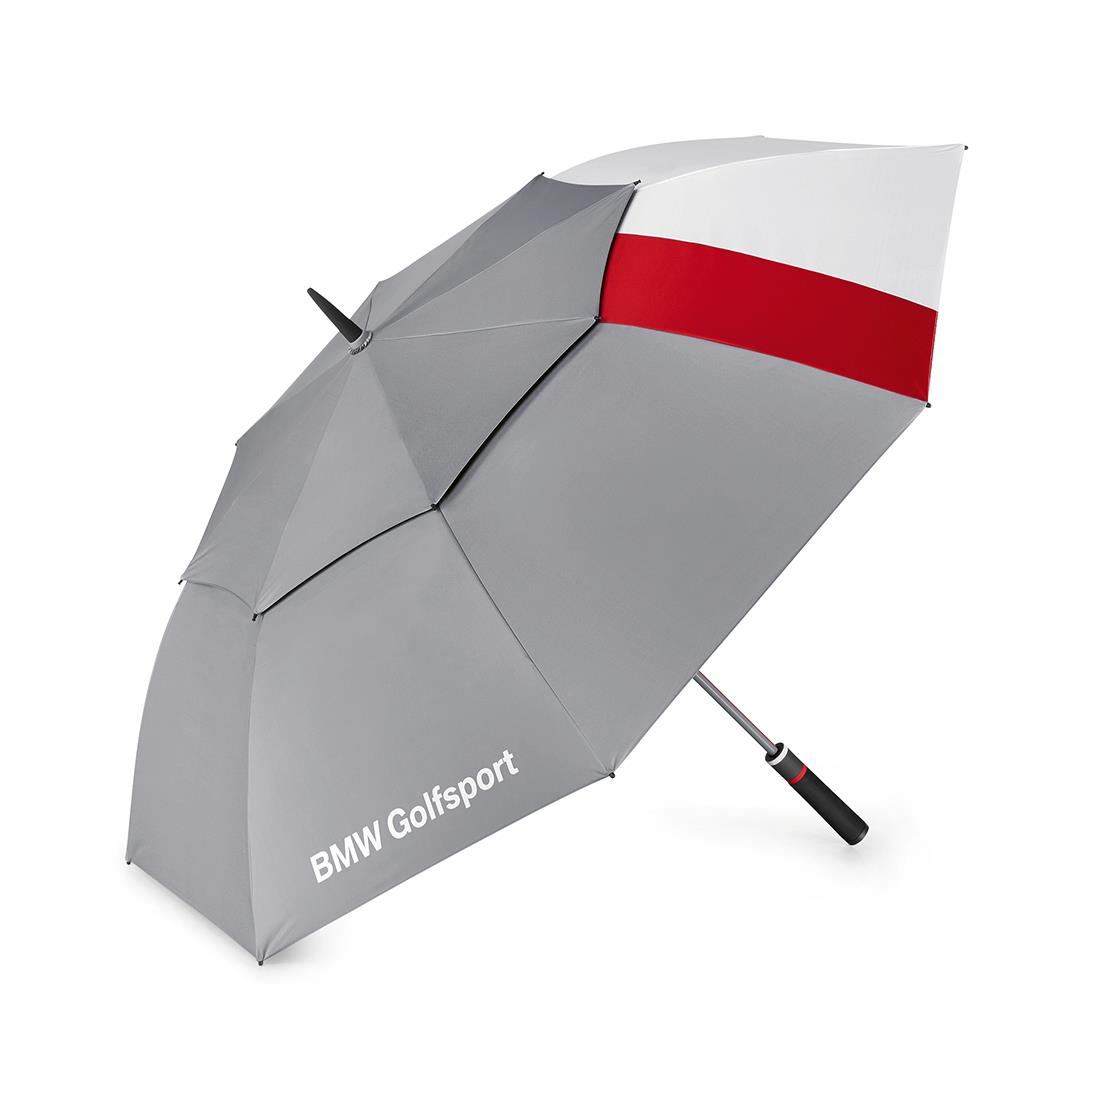 BMW Golfsport Umbrella